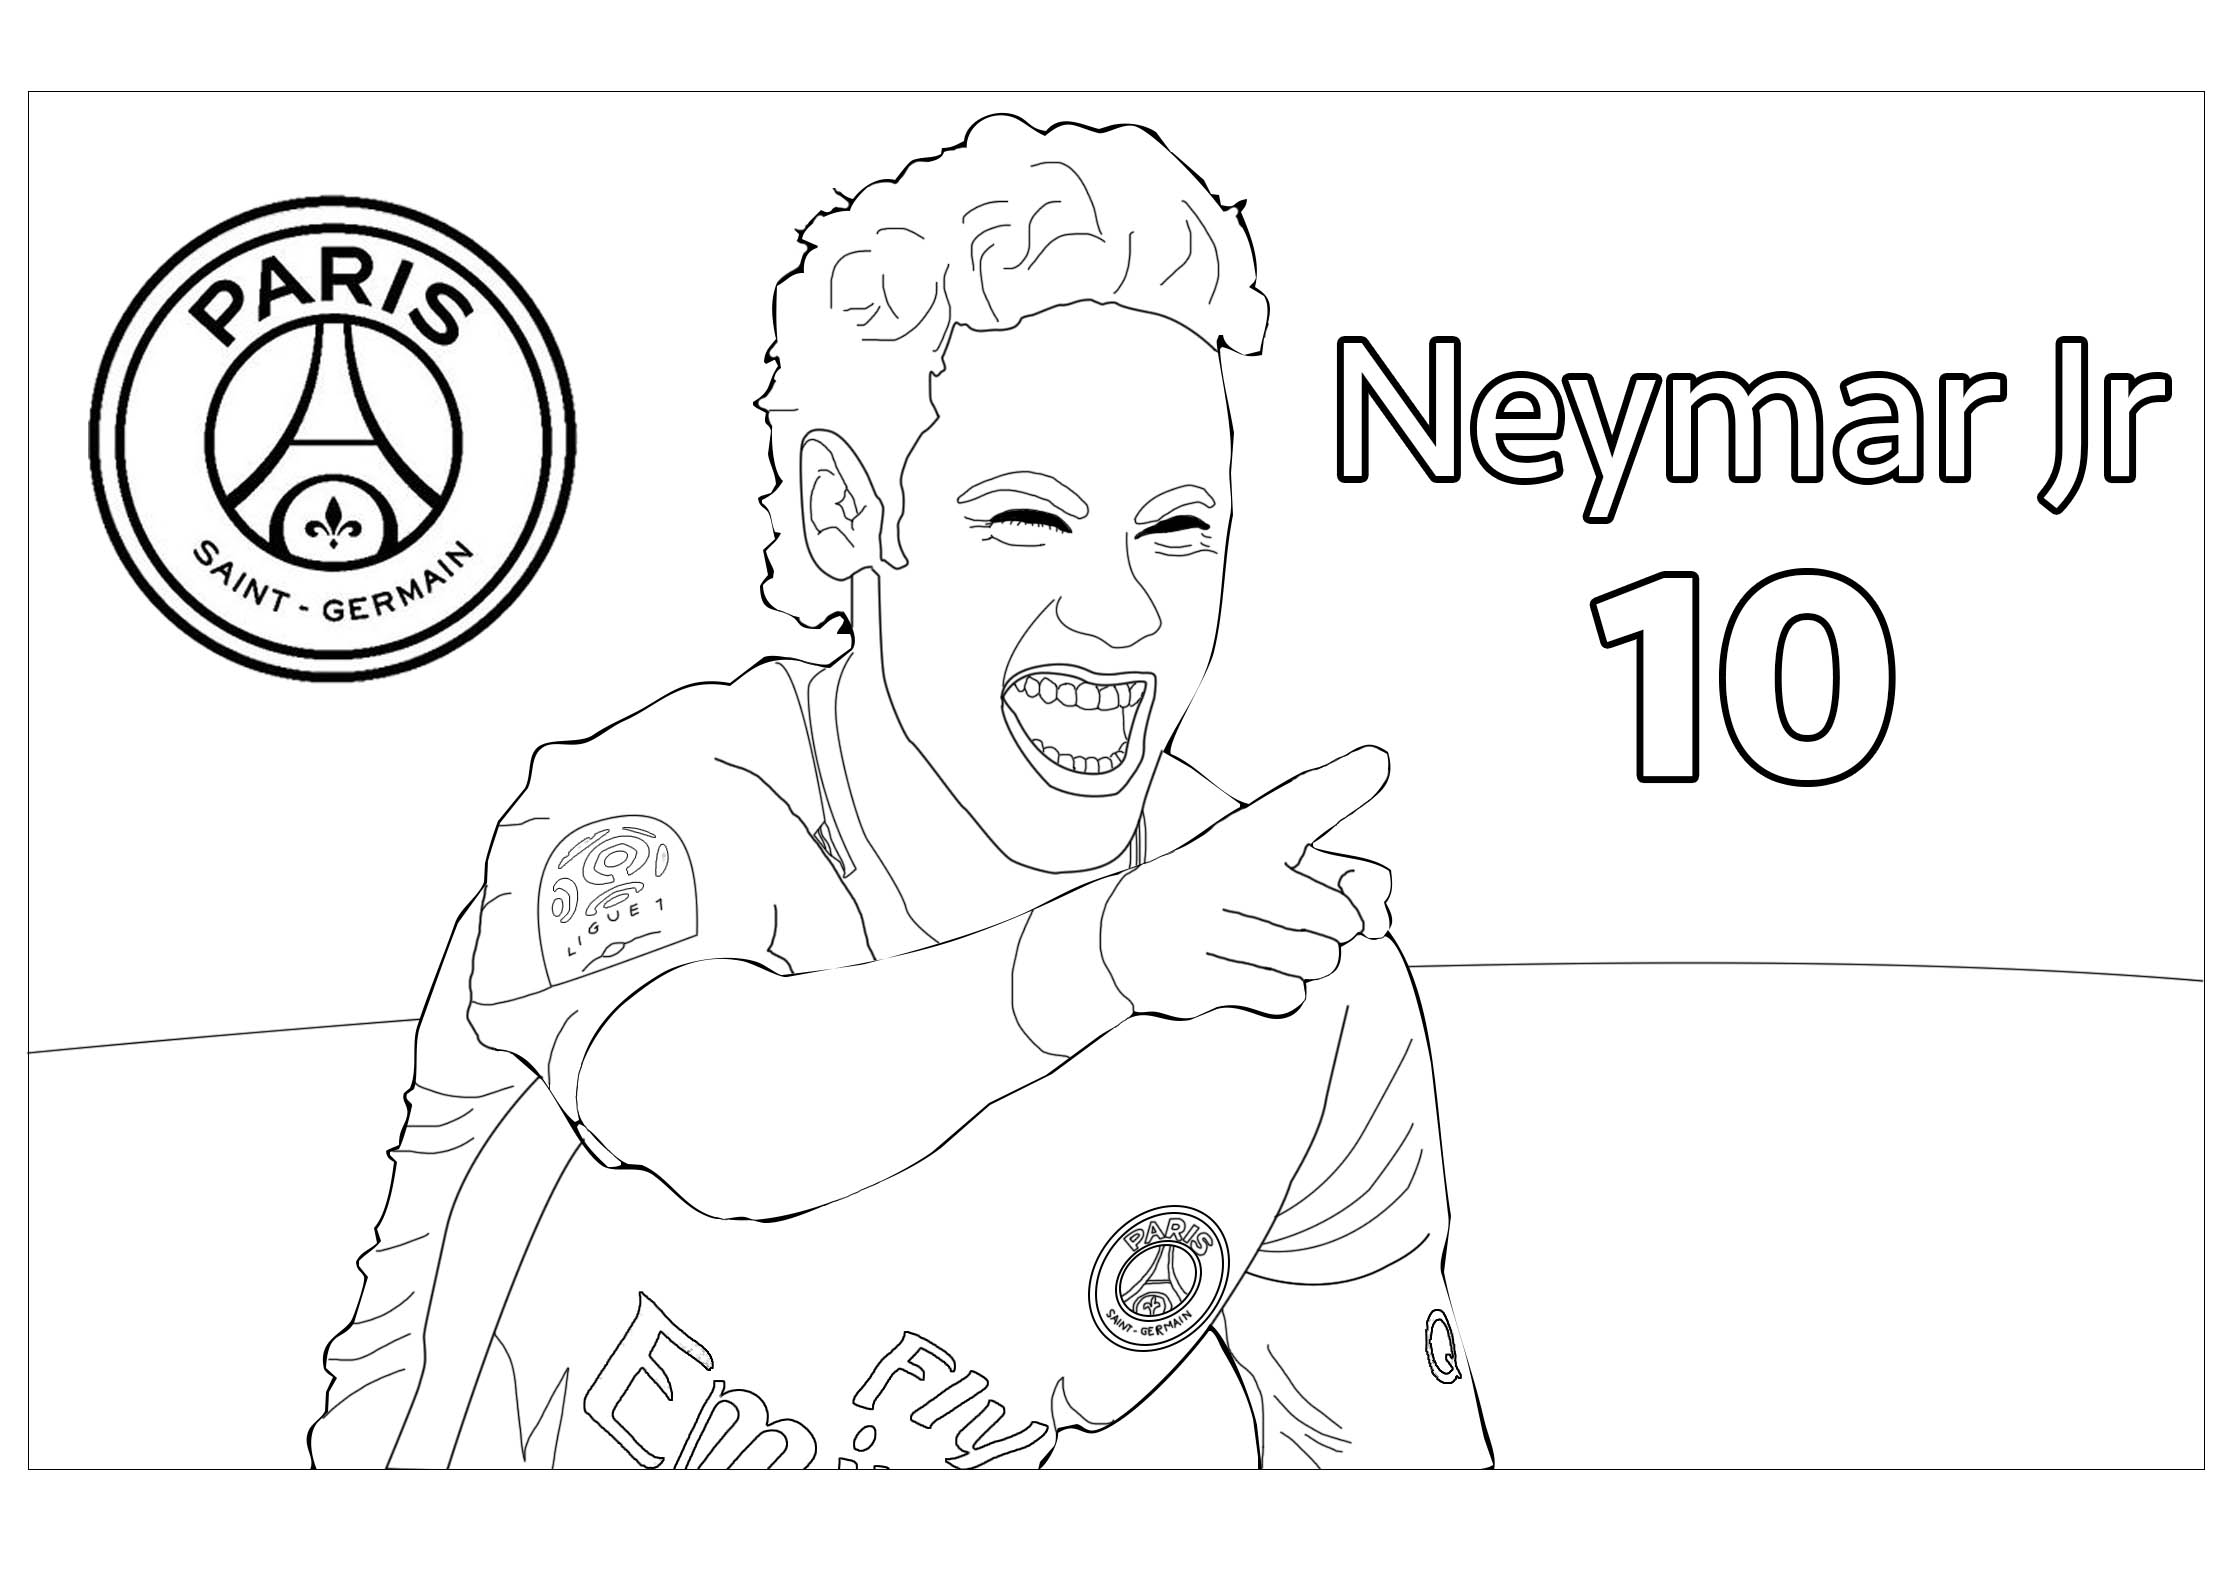 neymar psg number 10 coloring page